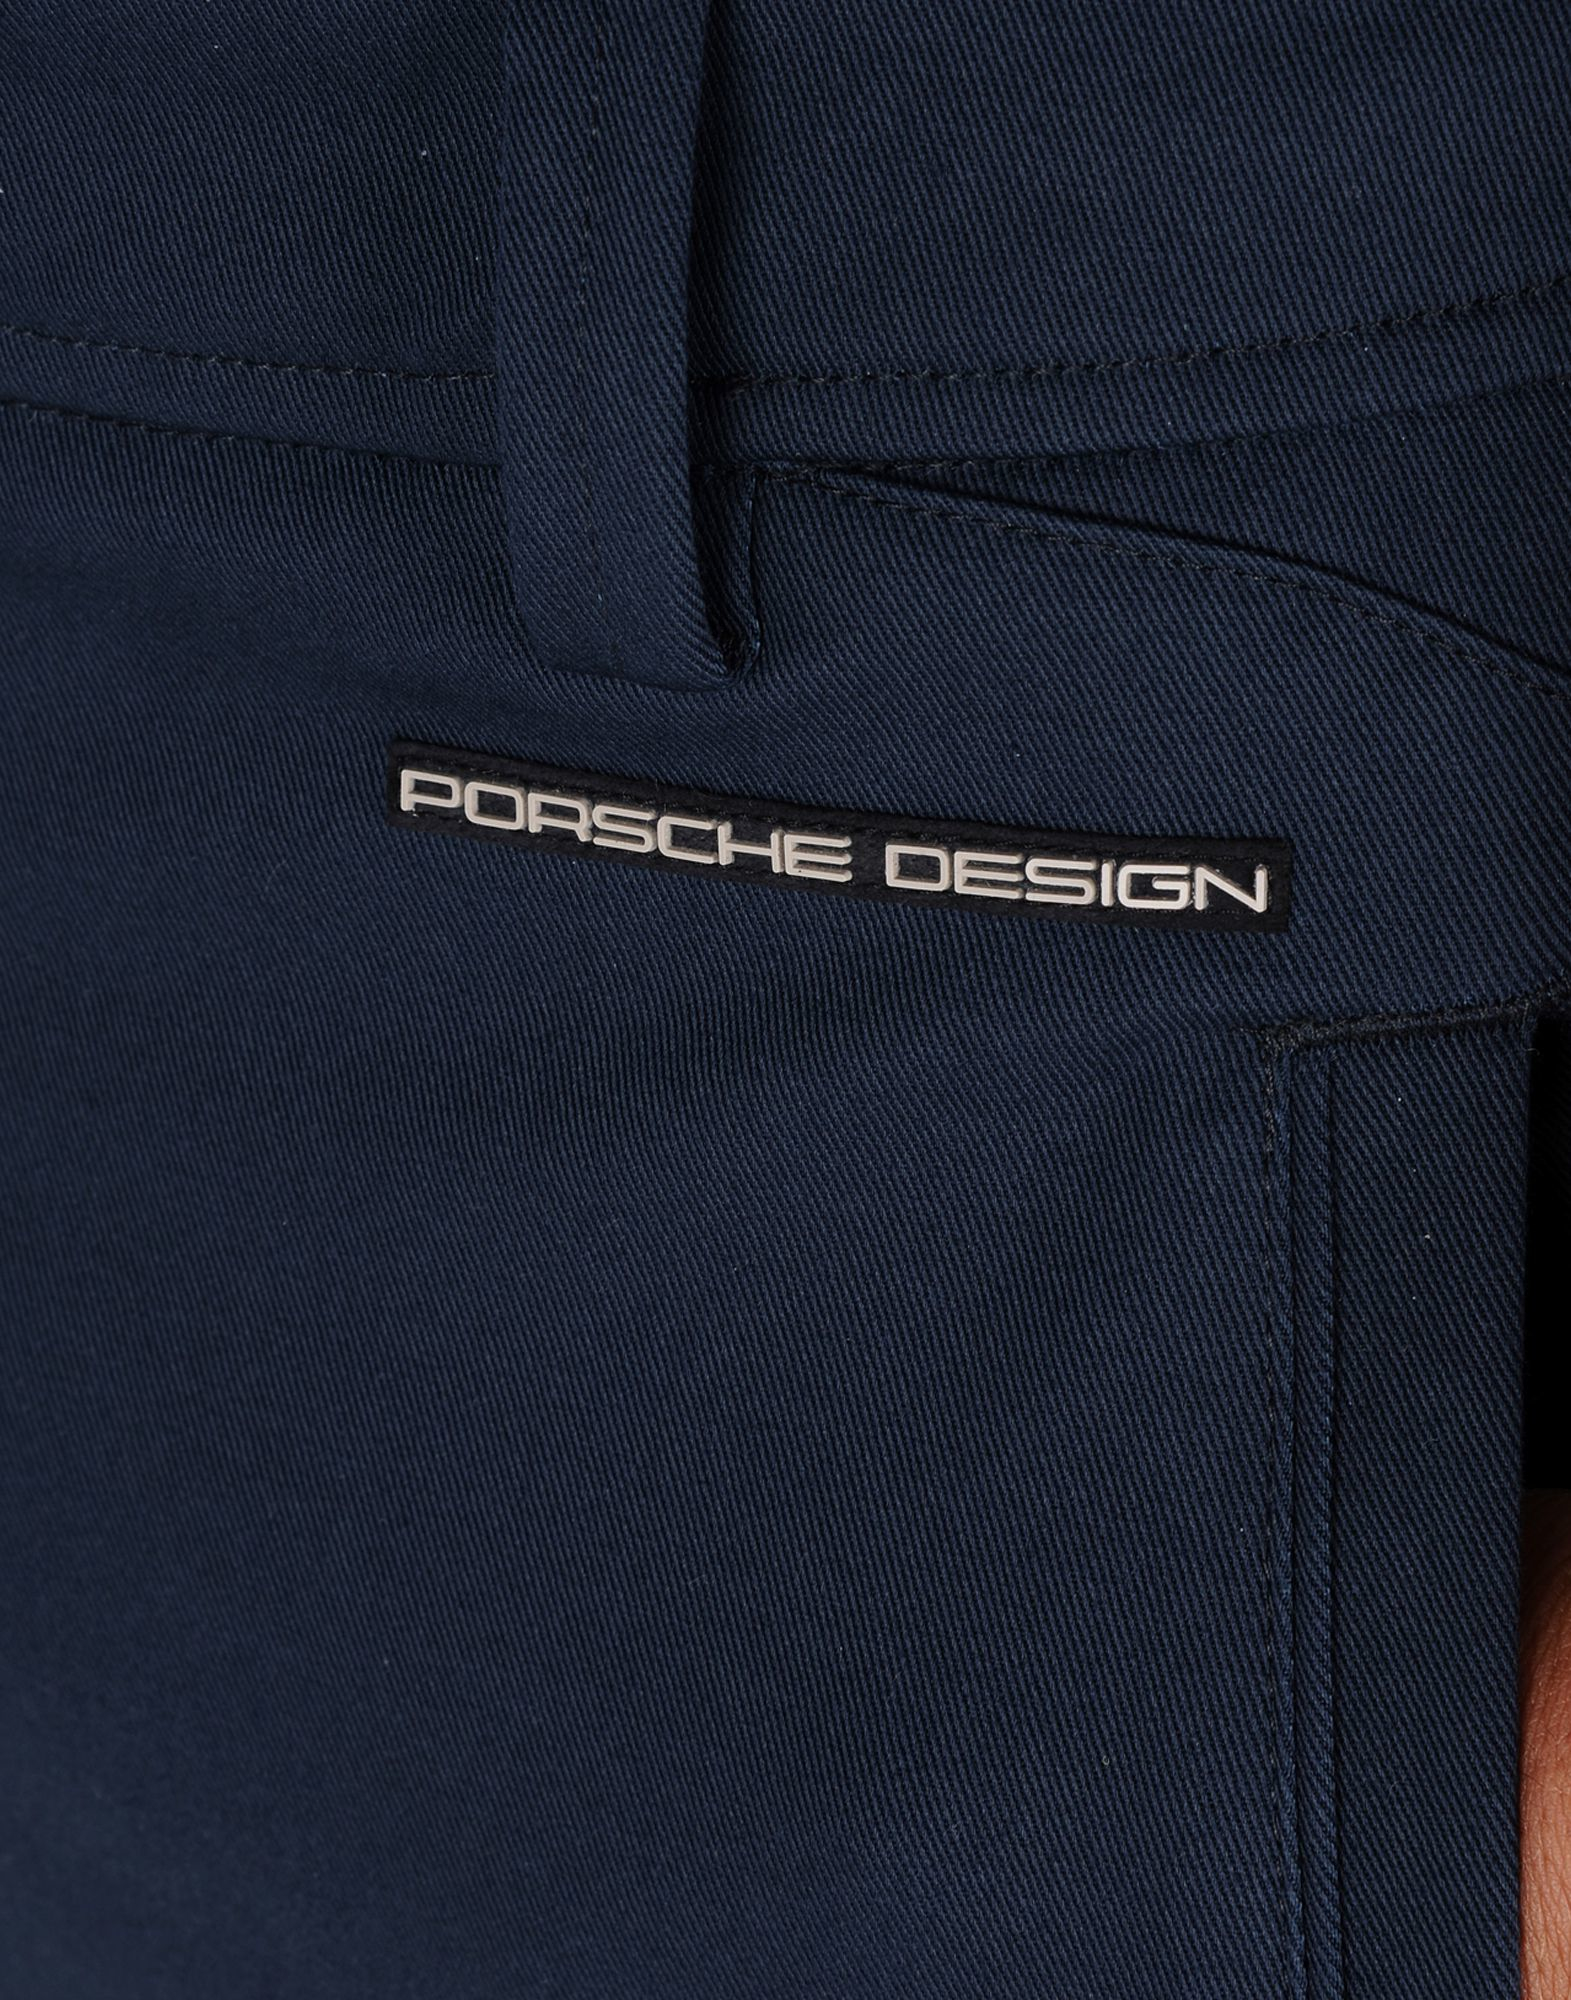 Porsche Design Cotton Casual Trouser in Black (Blue) for Men